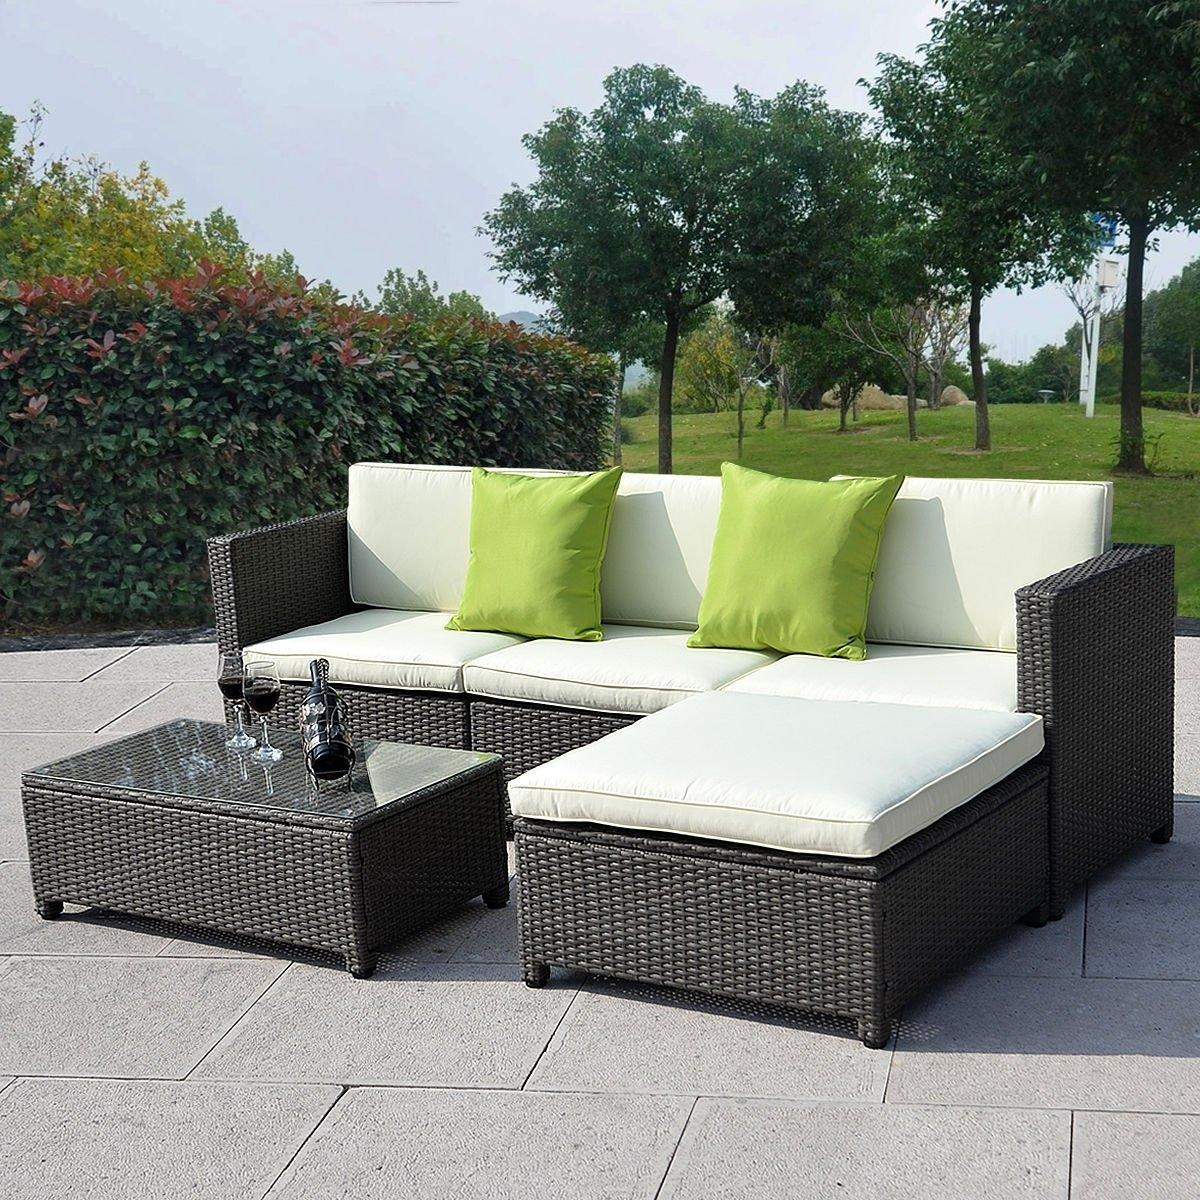 How To Decorate Outdoor Wicker Sofa | Babytimeexpo Furniture Within Black Wicker Sofas (Image 13 of 20)